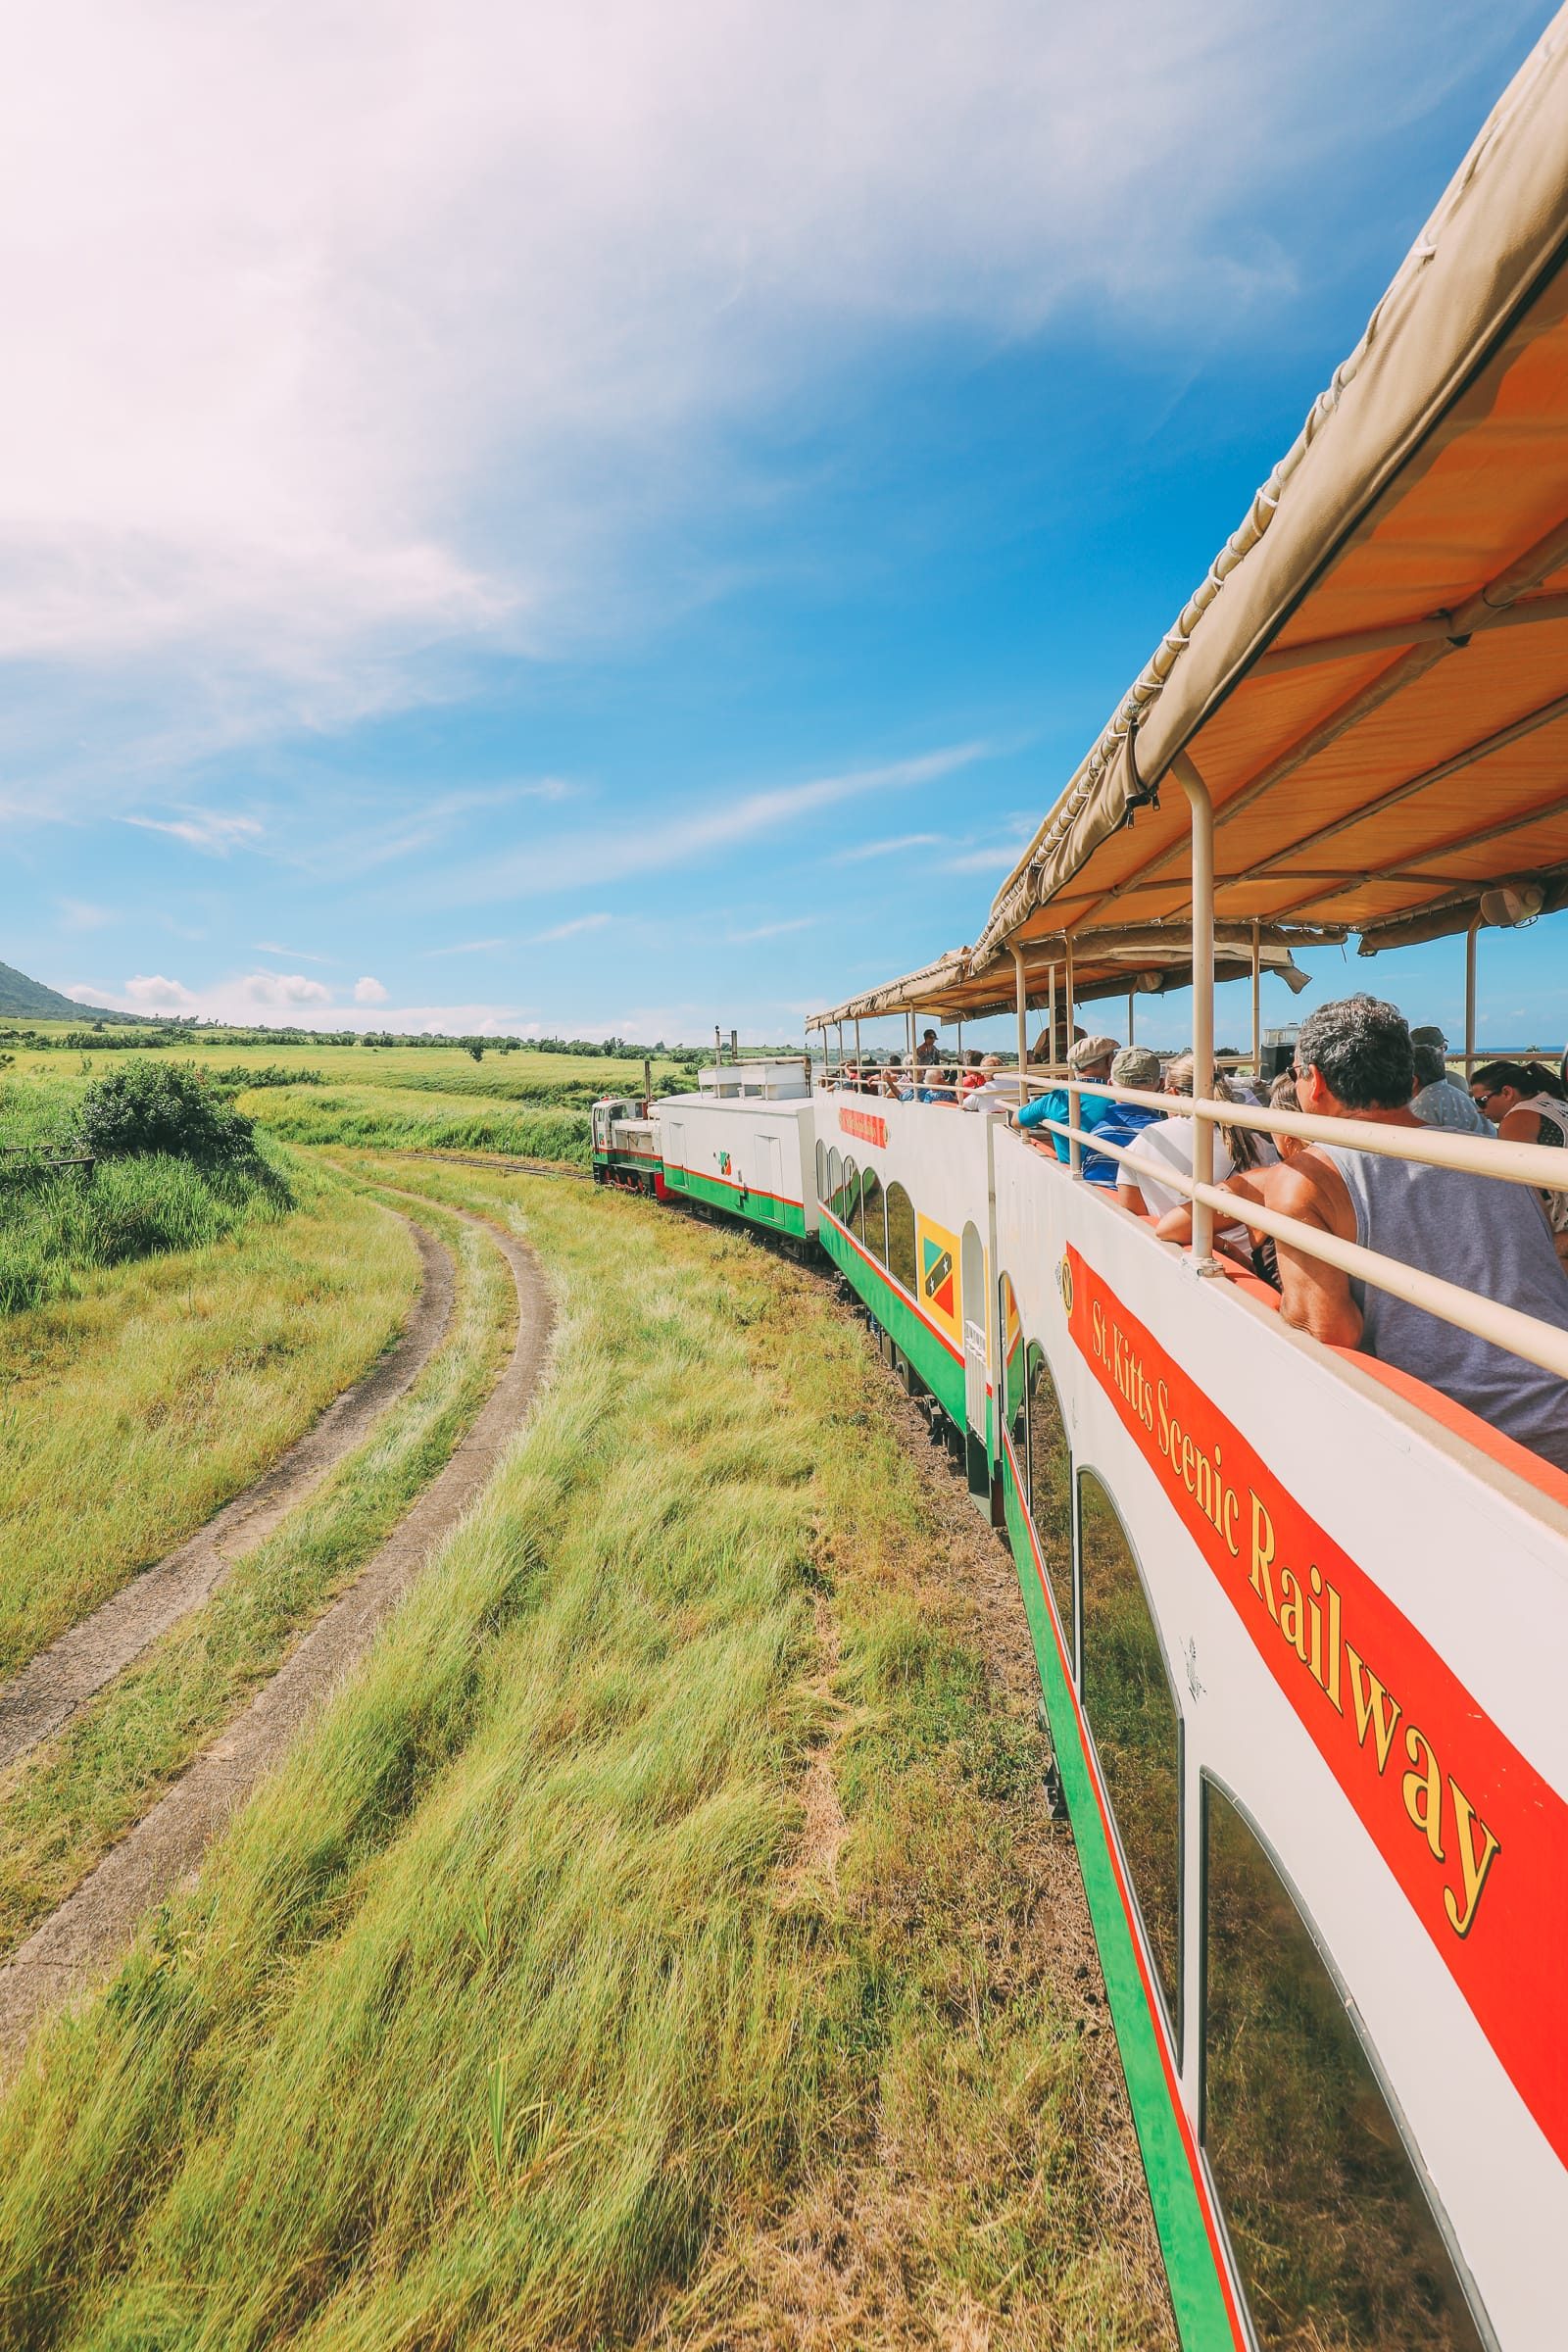 Rugged Coastlines, Old Forts And Lobster Dinners... On The Caribbean Island Of St Kitts (24)